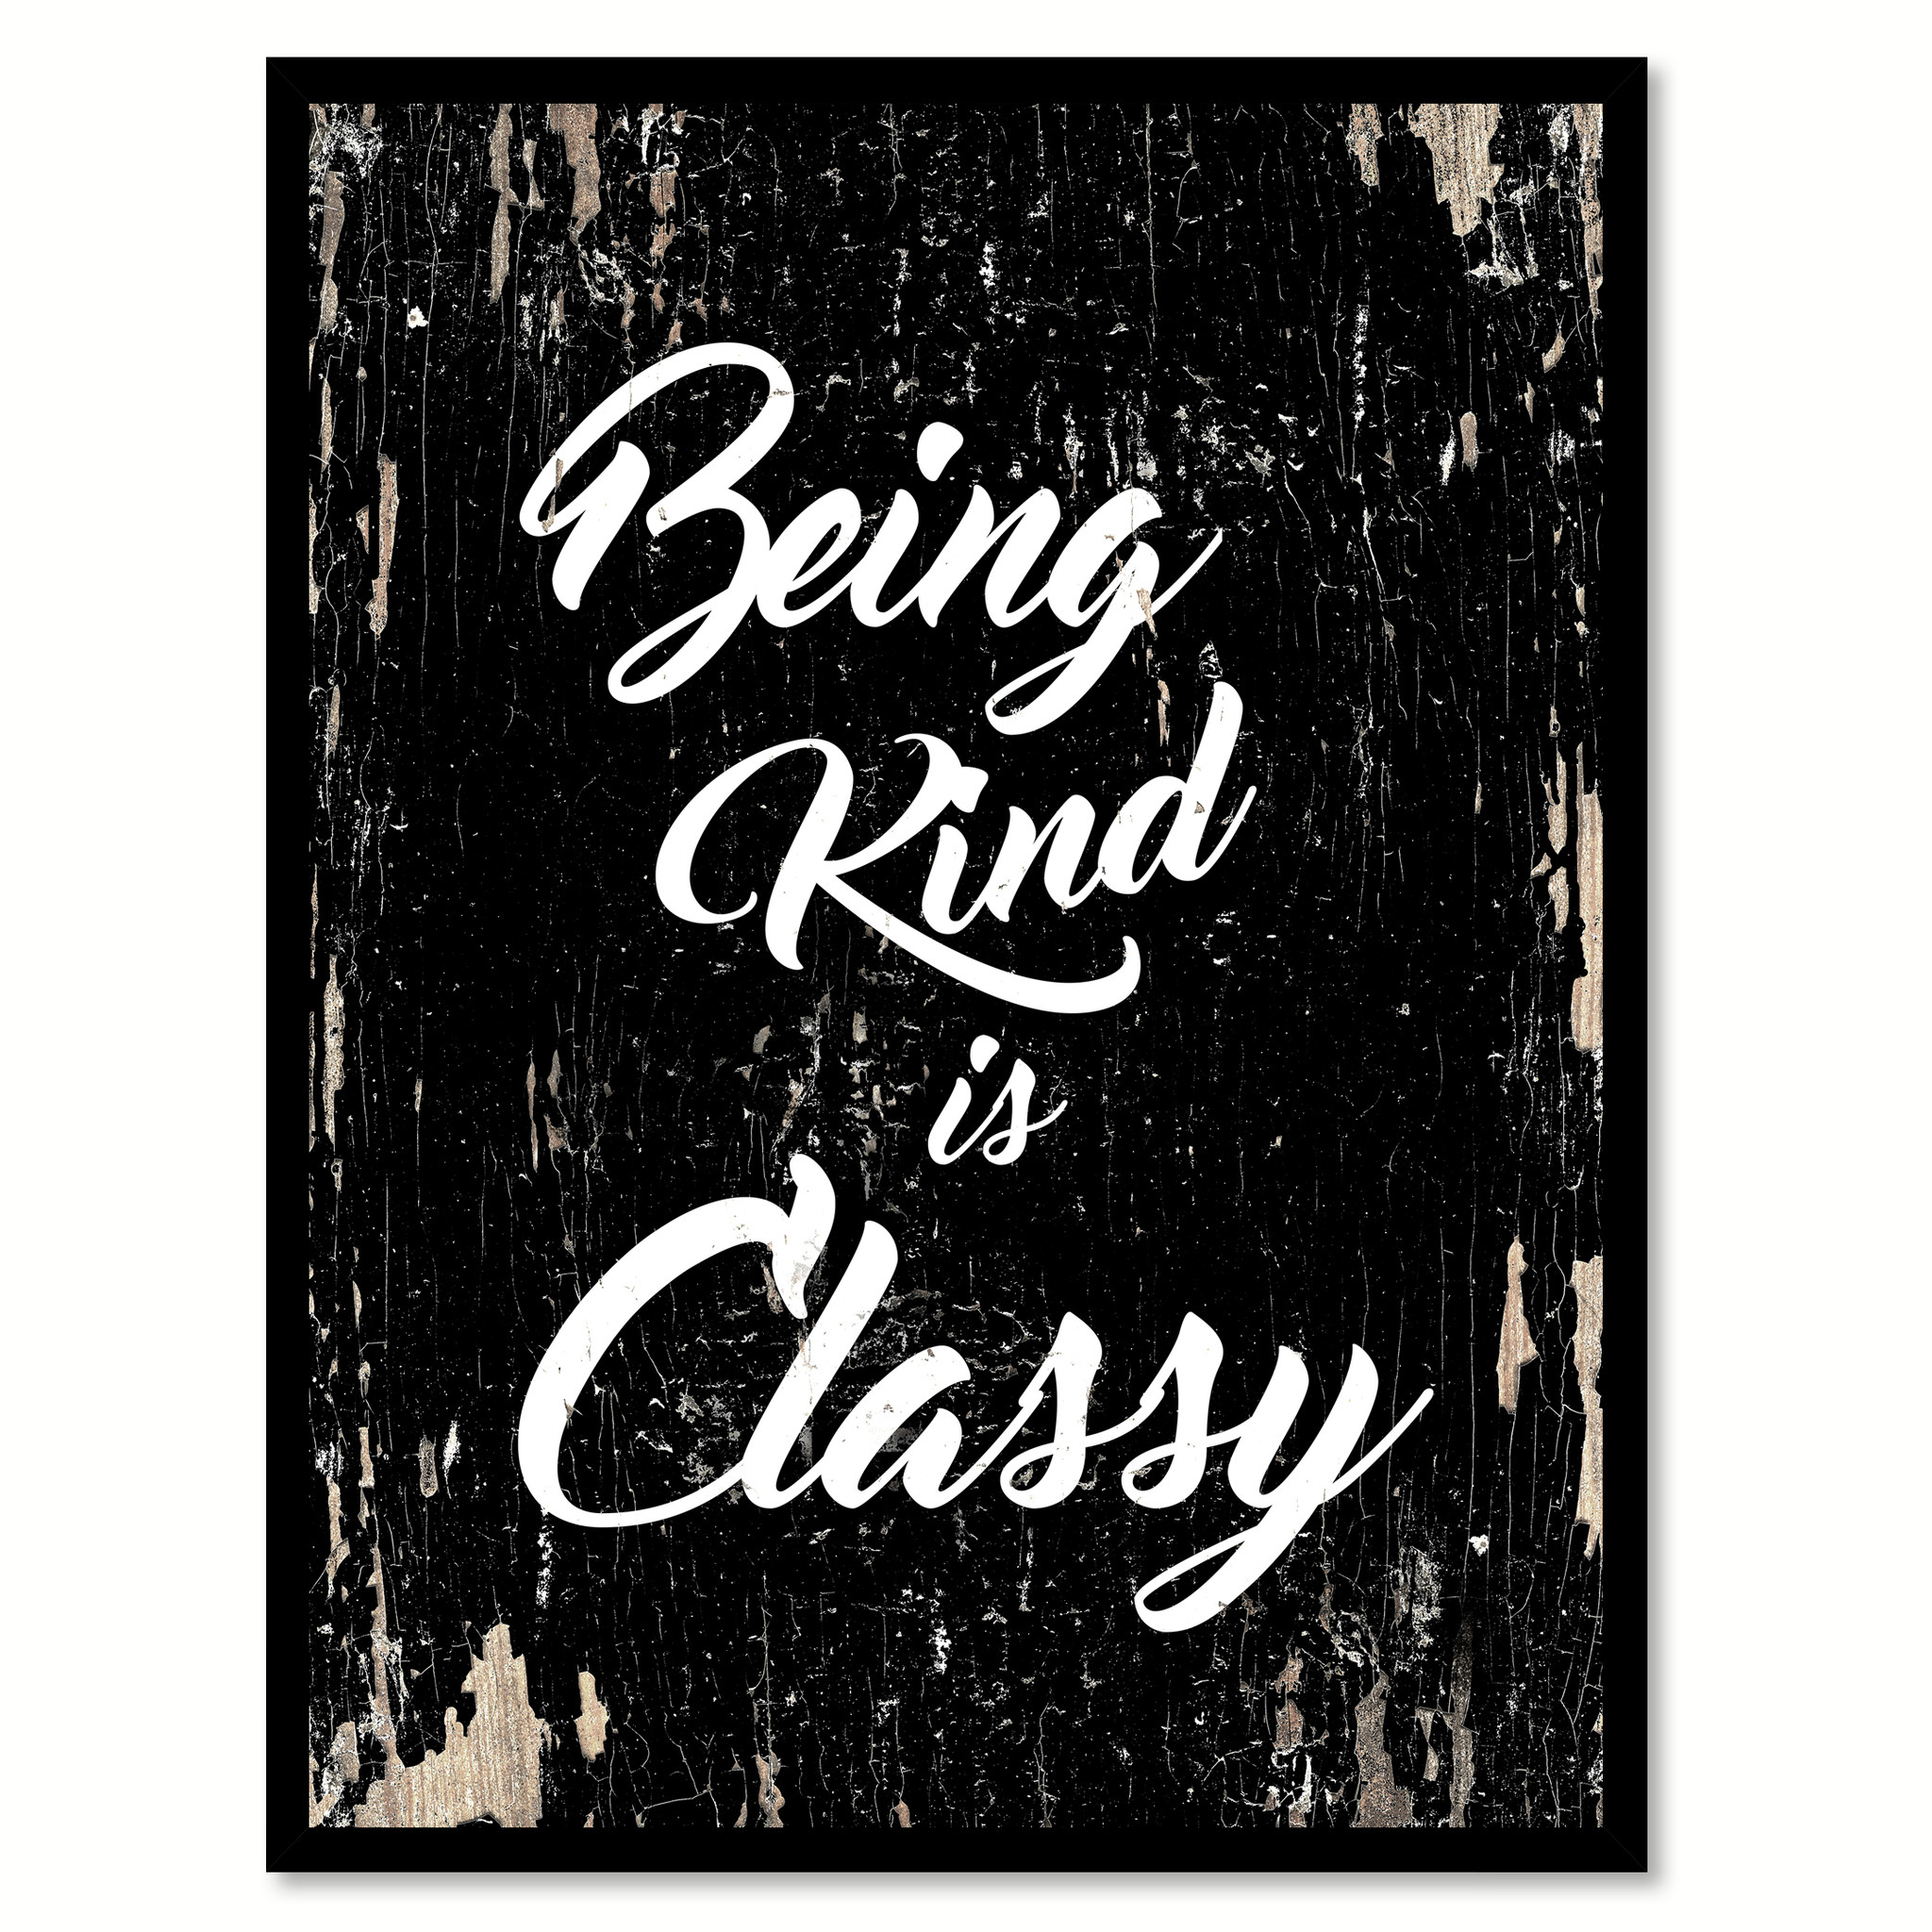 "Being Kind Is Classy Motivation Saying Canvas Print with Picture Frame Home Decor Wall Art Gifts - 7""x9\"""